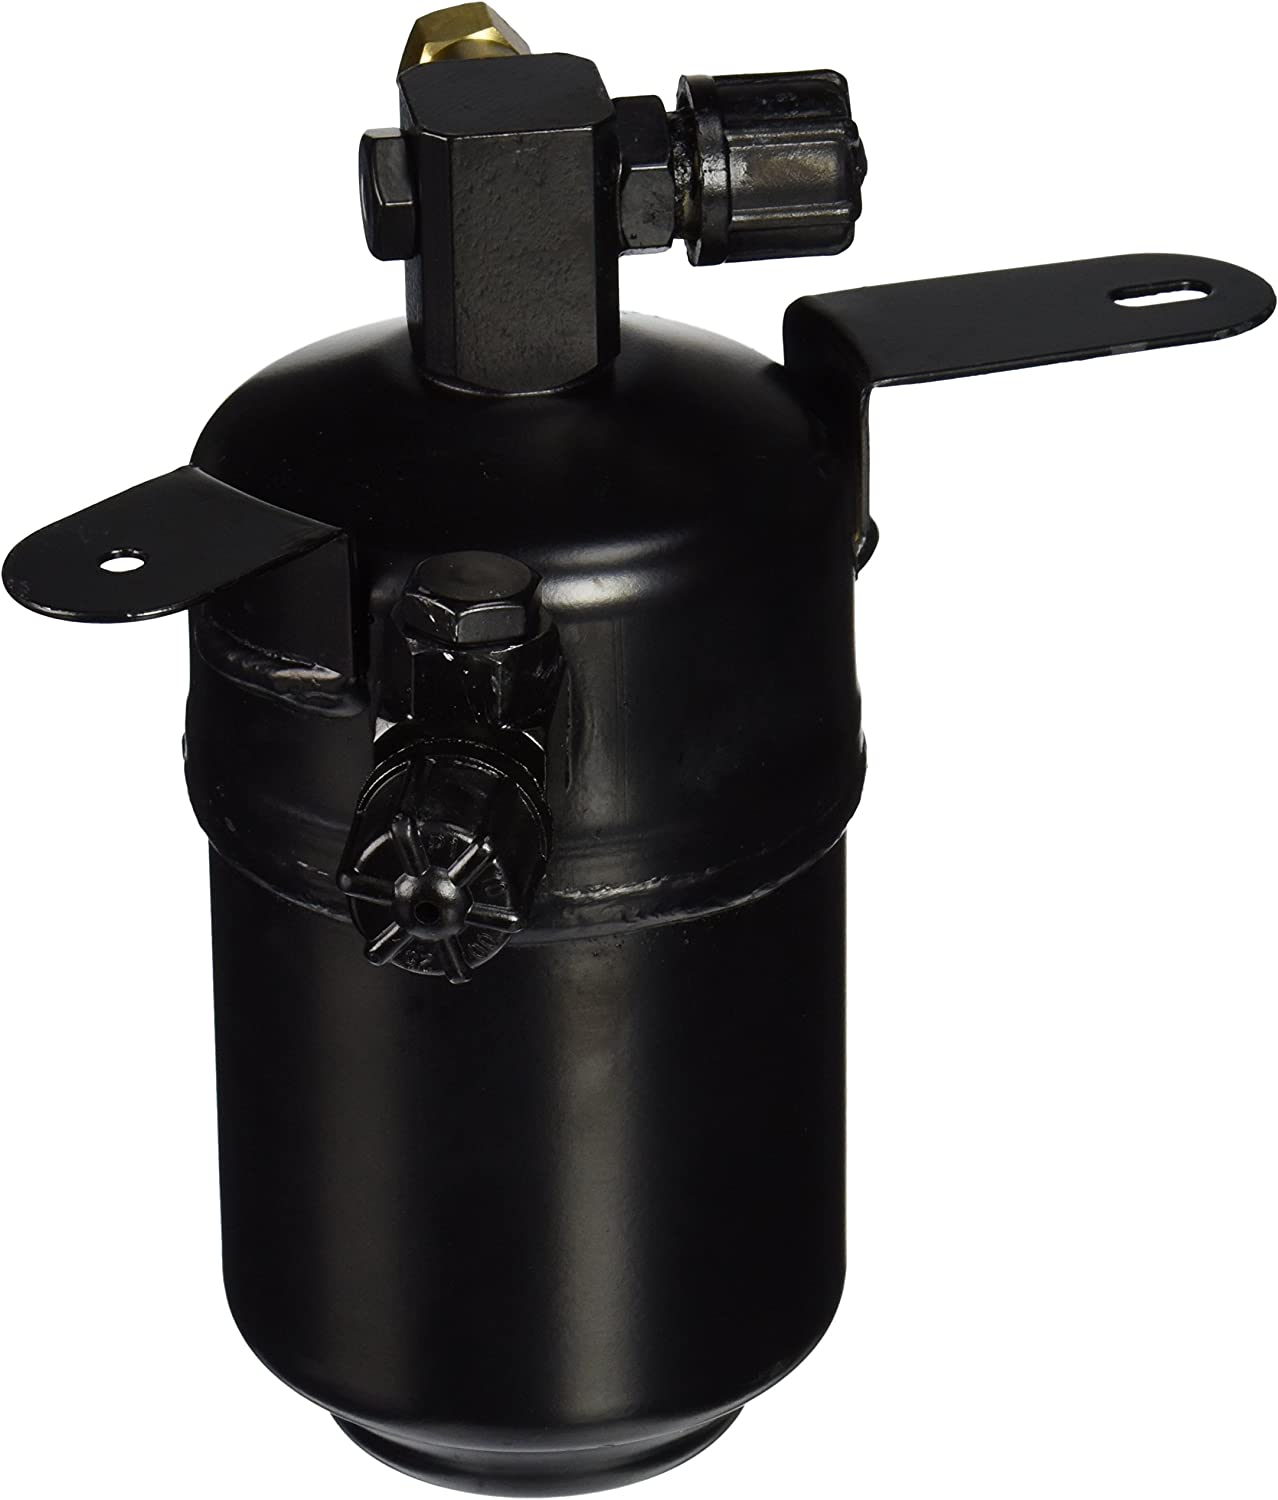 A//C Receiver Drier-Filter Drier 4 Seasons 33704